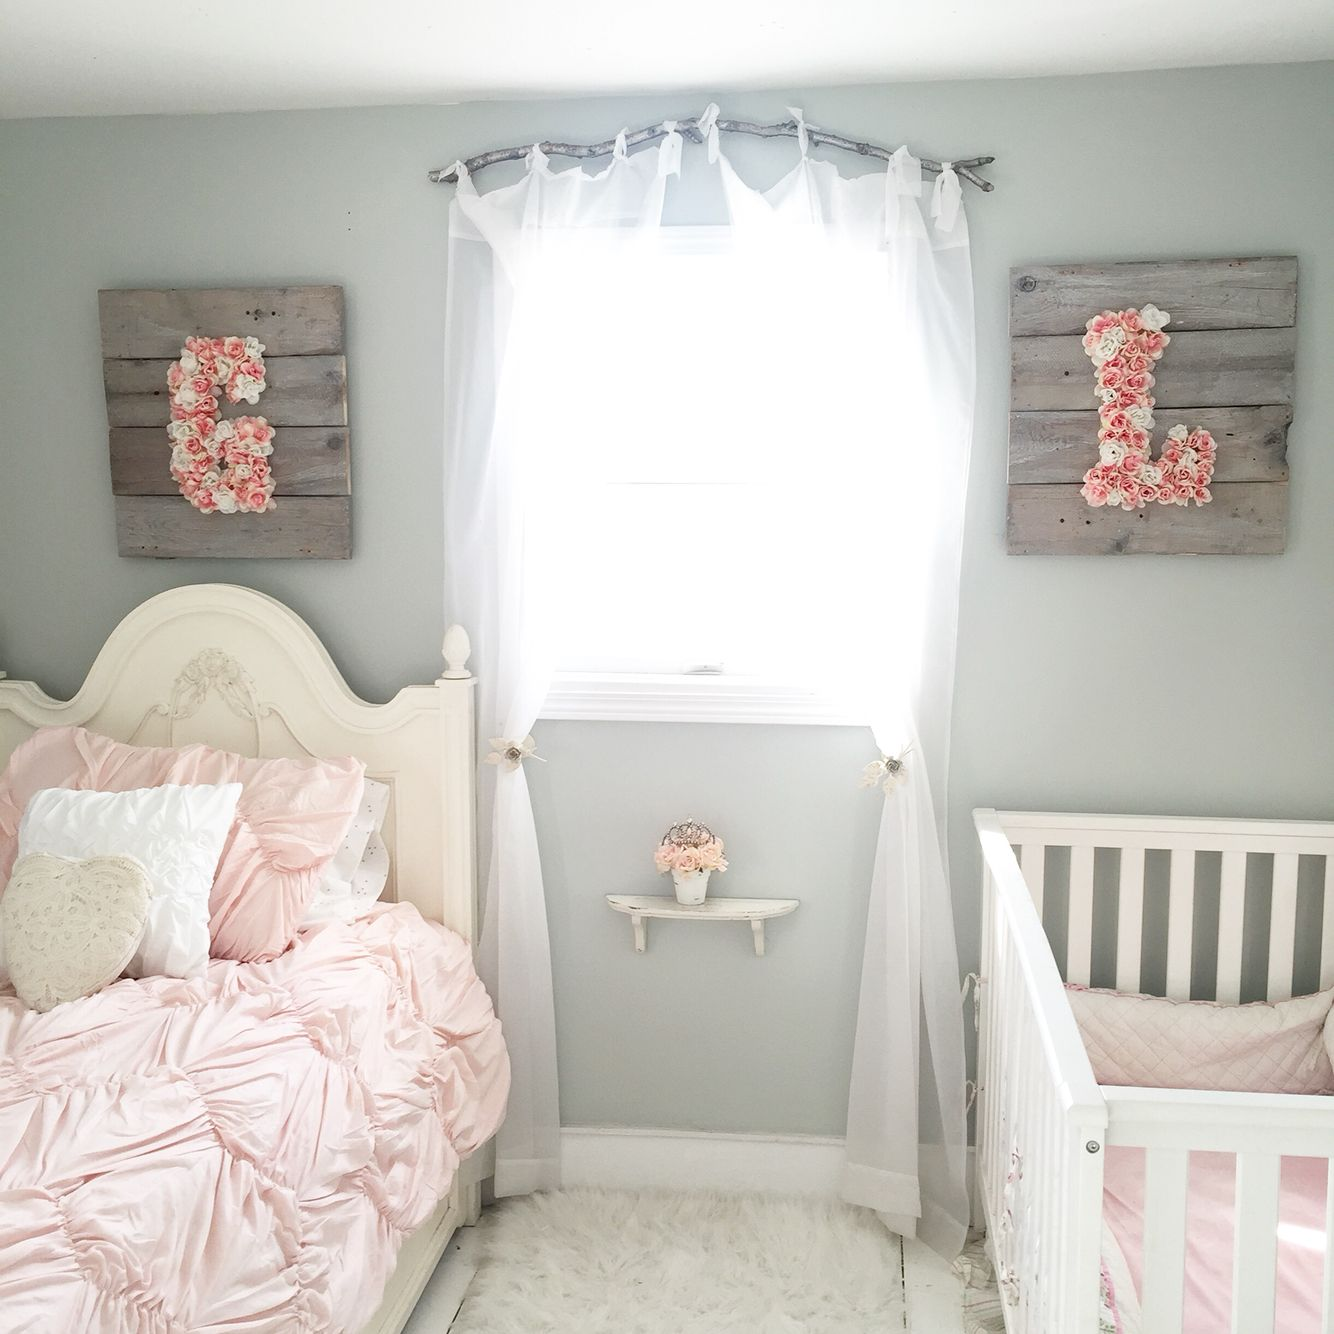 shop floral monograms at littlebrownnest etsy com bedrooms pinterest kinderzimmer. Black Bedroom Furniture Sets. Home Design Ideas